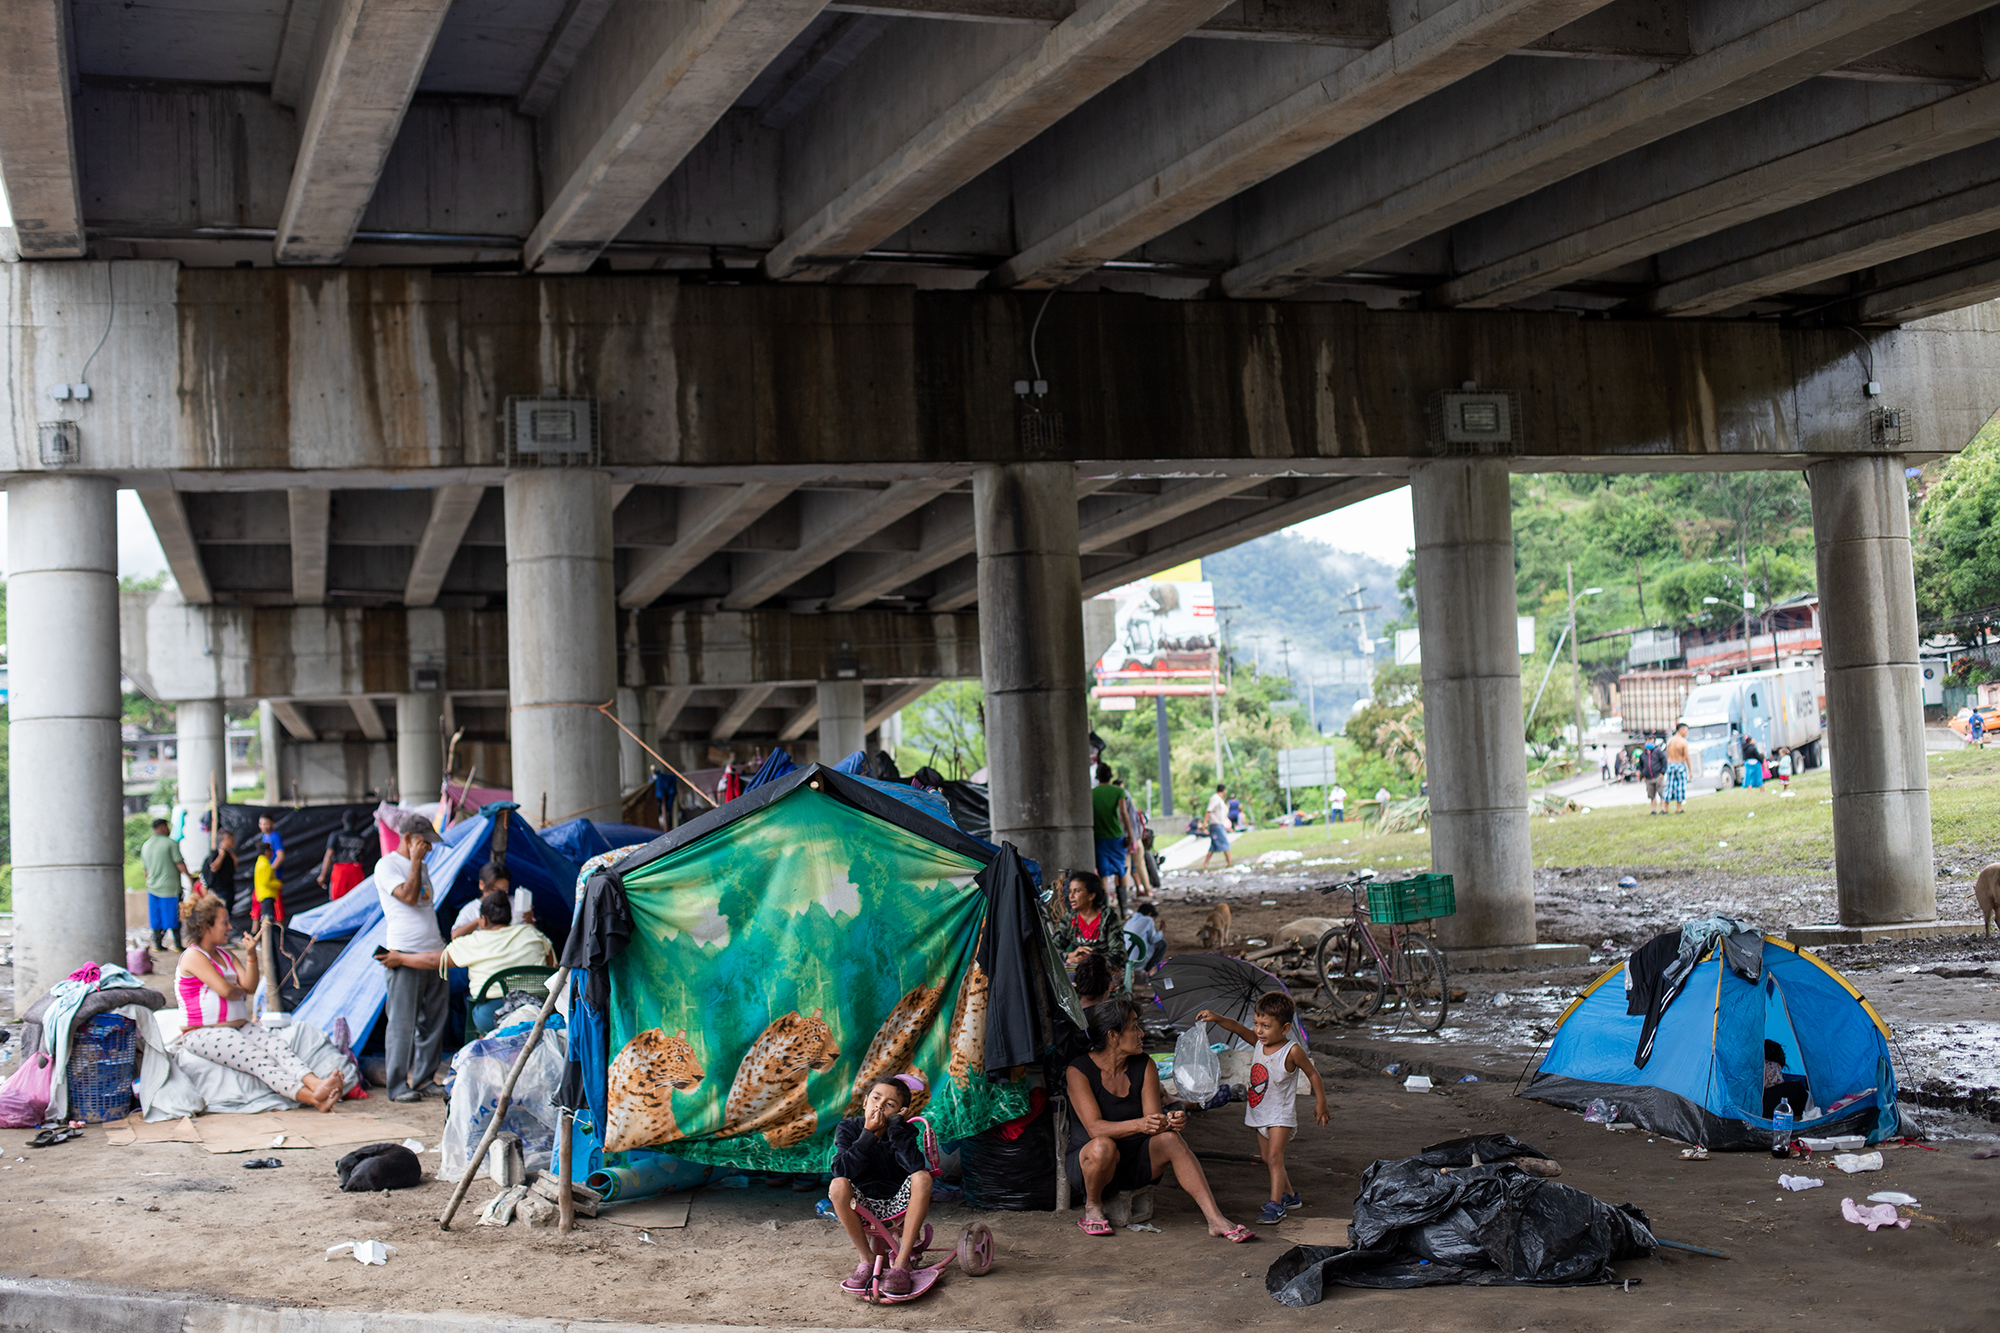 No less than 350 families have taken refuge under the exit bridge to the west, after the flooding provoked by tropical storms Eta and Iota devastated the sector of Chamelecón. San Pedro Sula, Nov. 21, 2020. Photo: Martín Cálix.